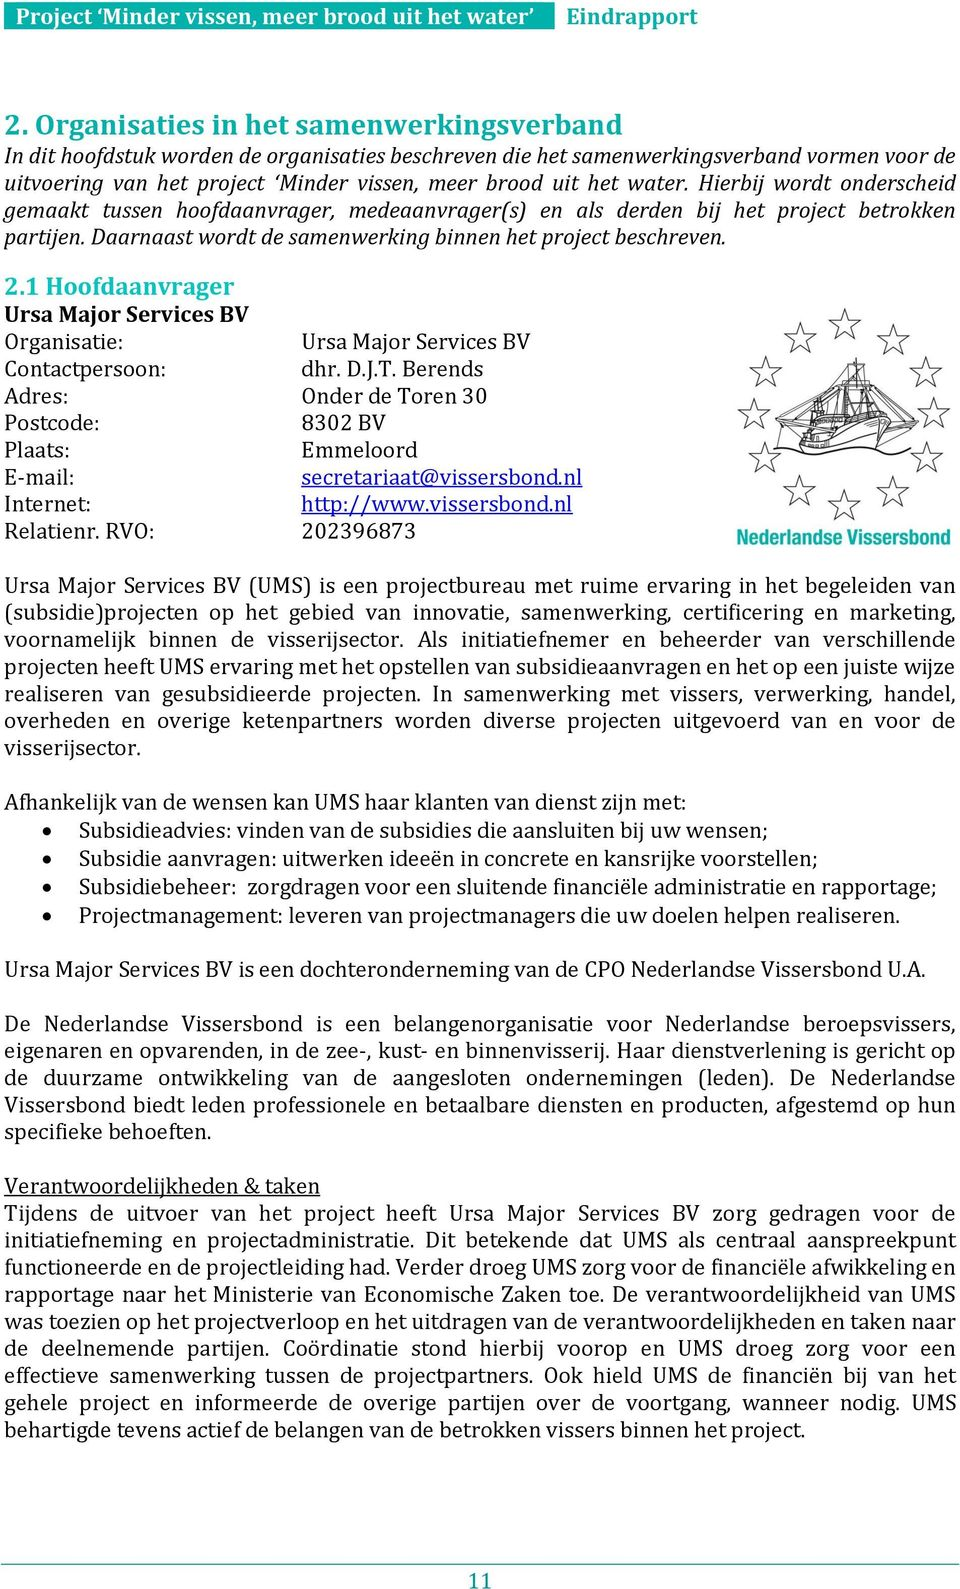 1 Hoofdaanvrager Ursa Major Services BV Organisatie: Ursa Major Services BV Contactpersoon: dhr. D.J.T.